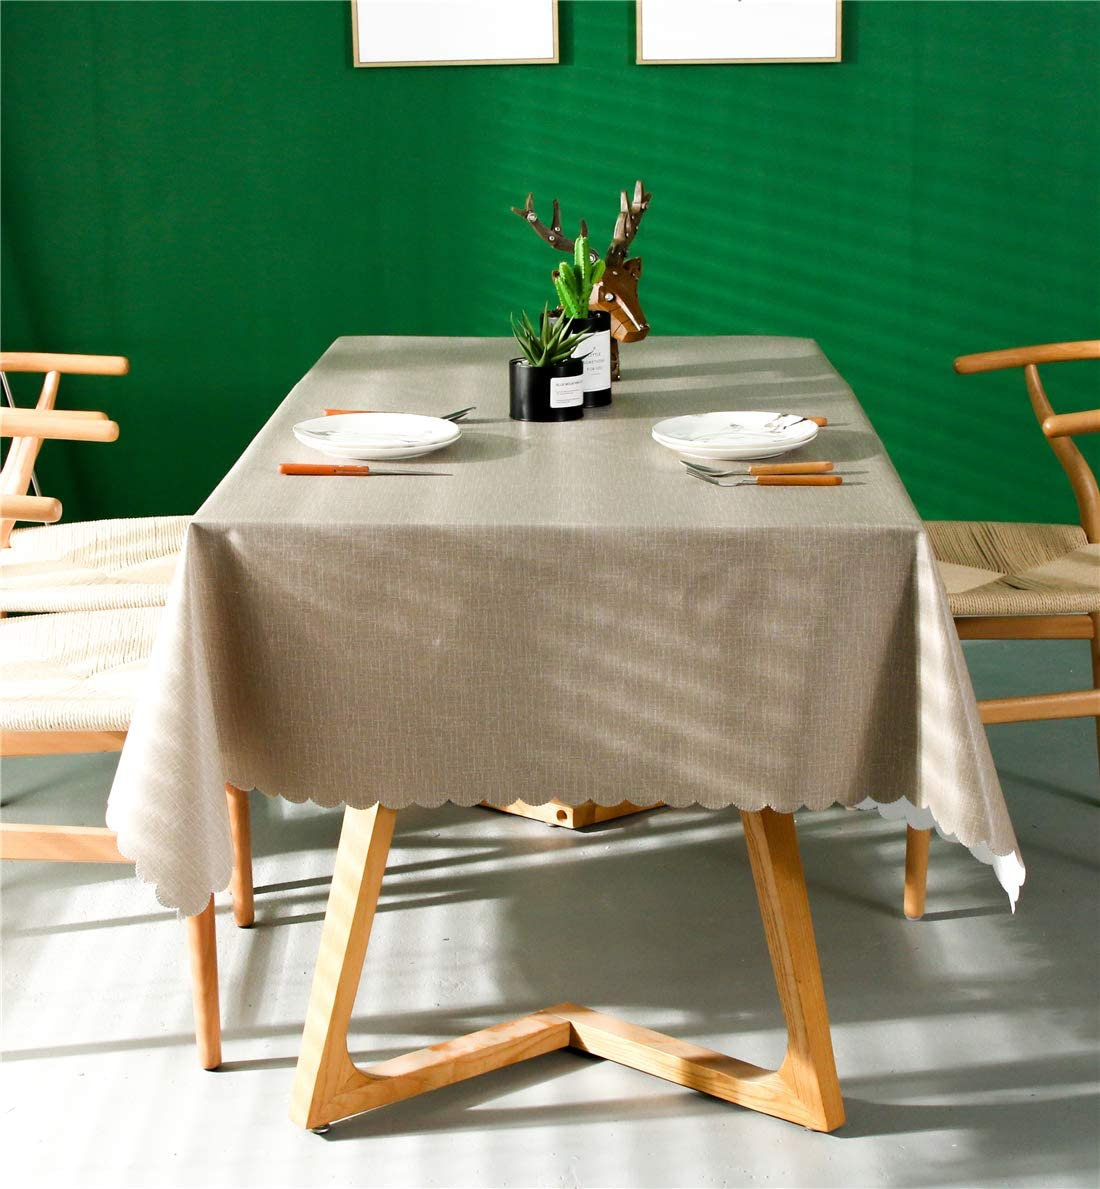 140x180cm,P-4 Omelas Plaid Vinyl Tablecloth Rectangular 55x70in Beige and White Checkered PVC Oilcloth Oblong Wipe Clean Dining Kitchen Table Cover Protector Waterproof//Stain-Resistant//Oil-Proof